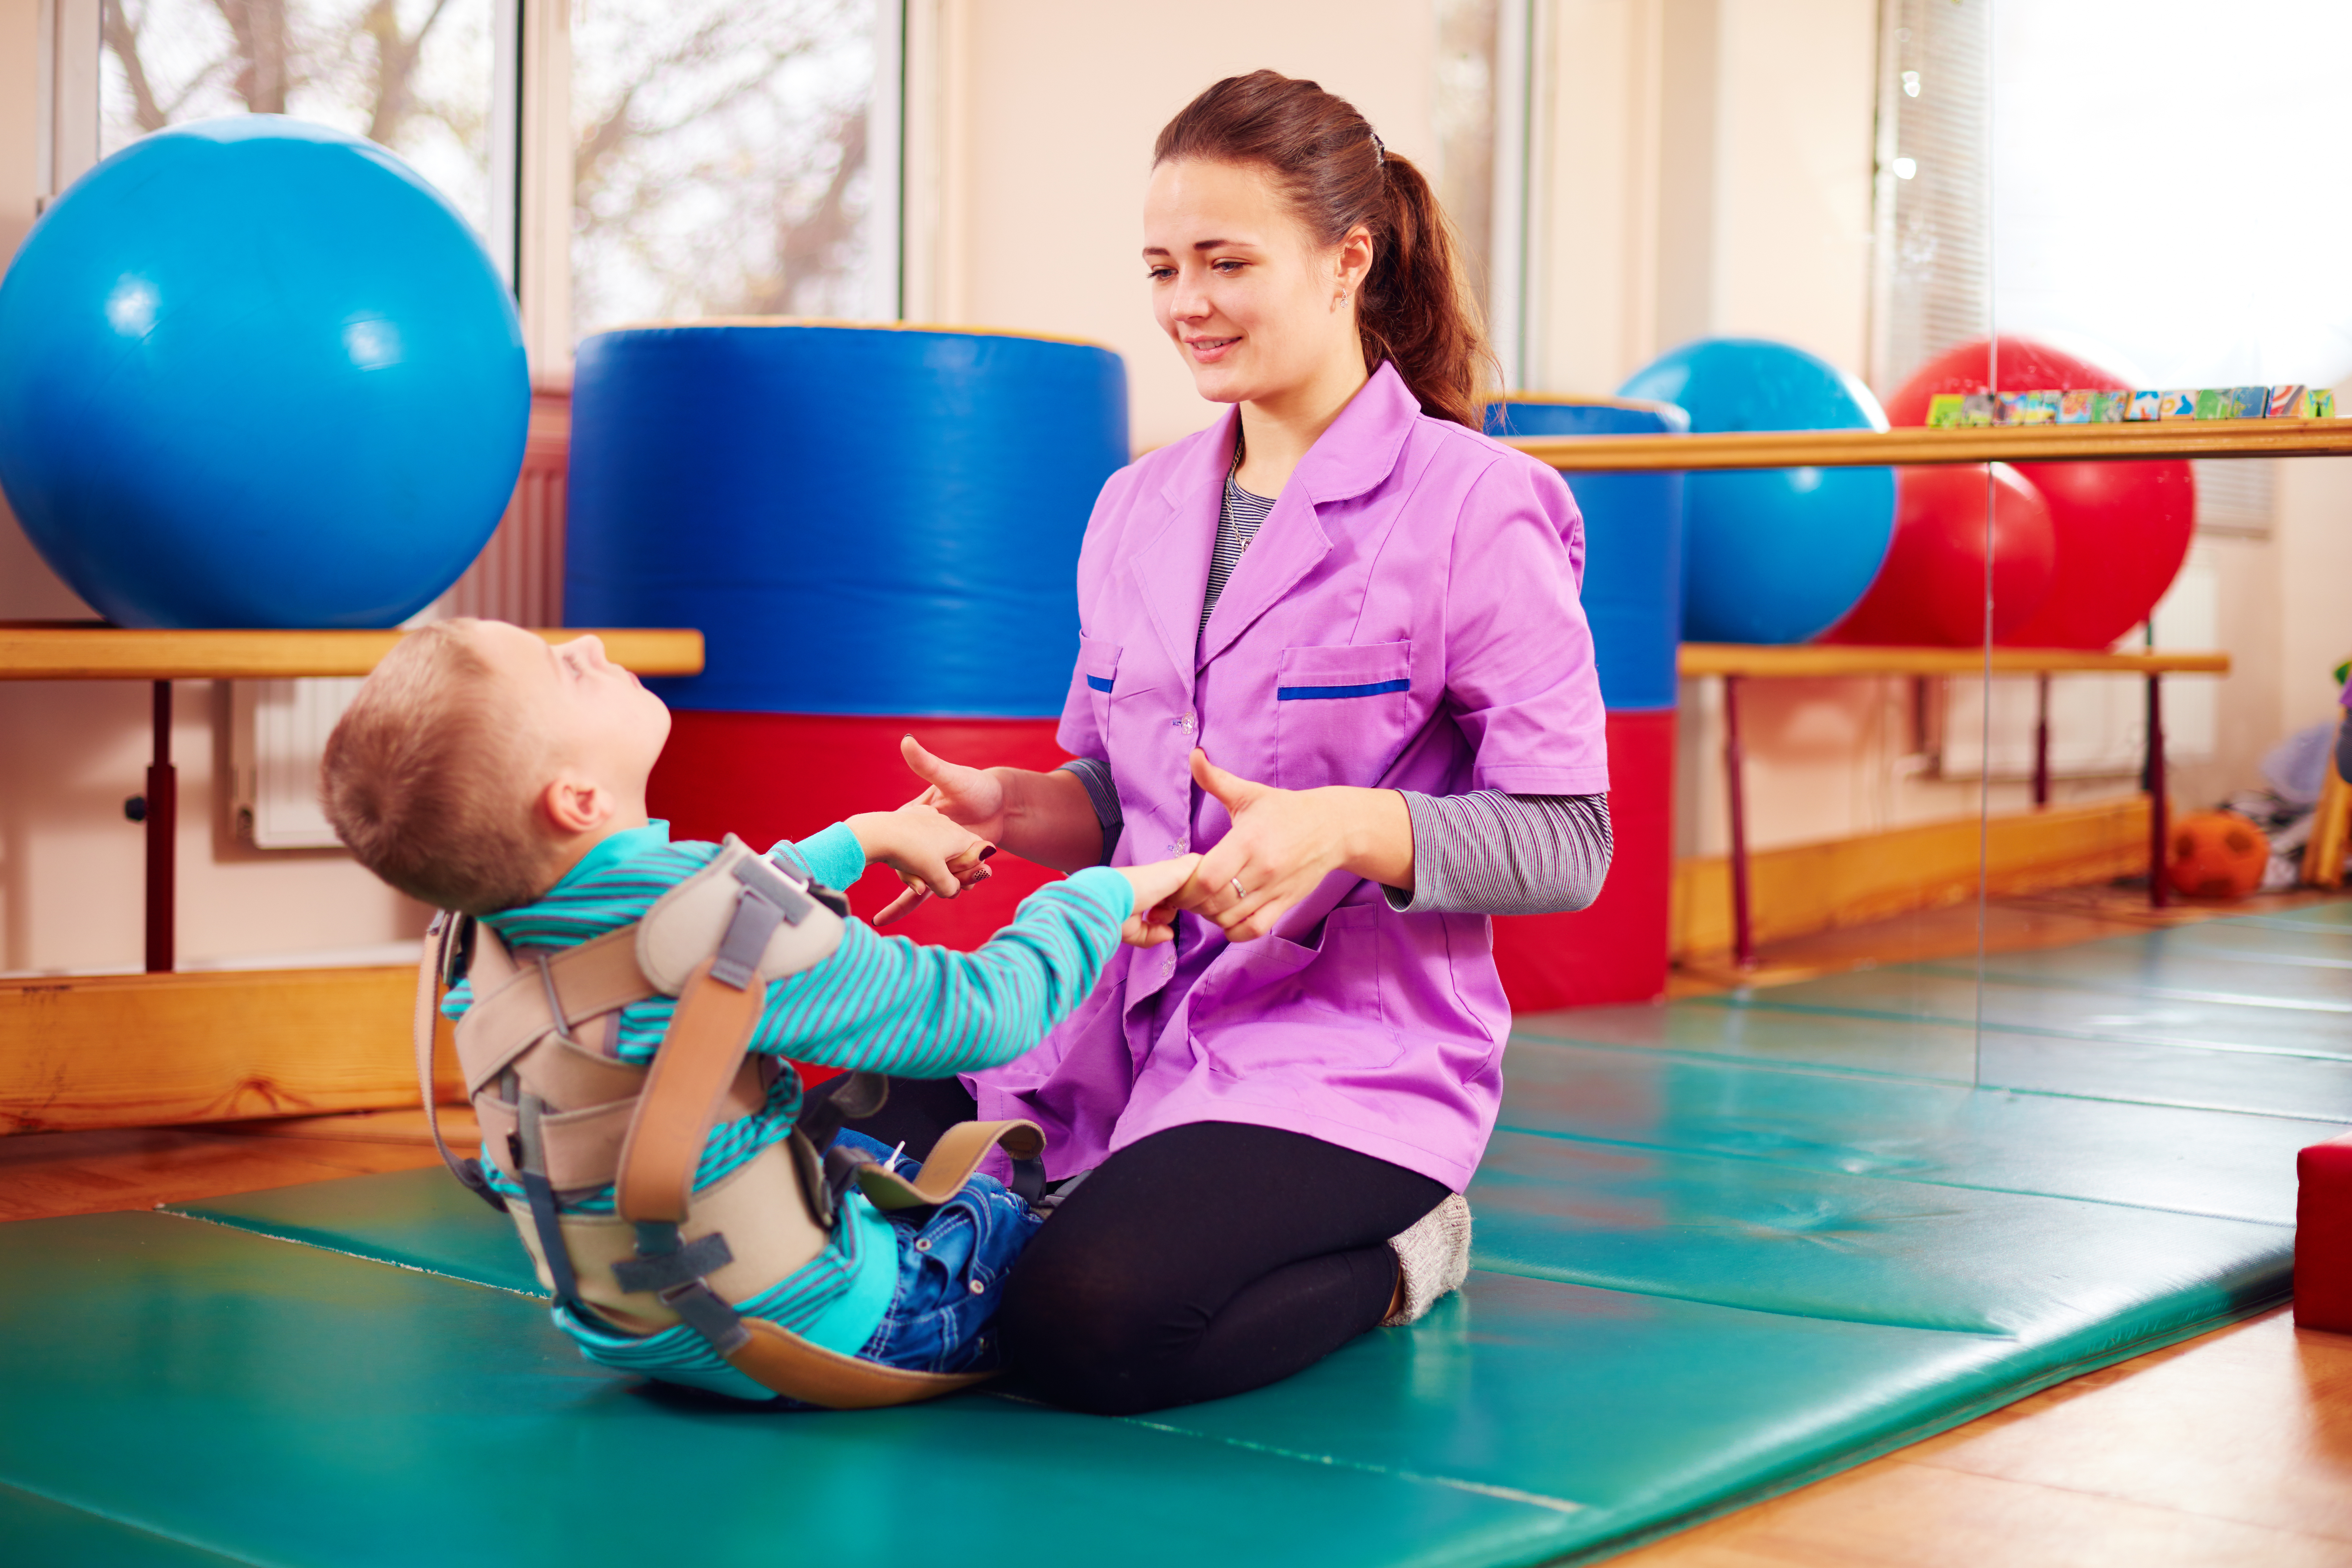 What a Physical Therapist Can do For His Patient